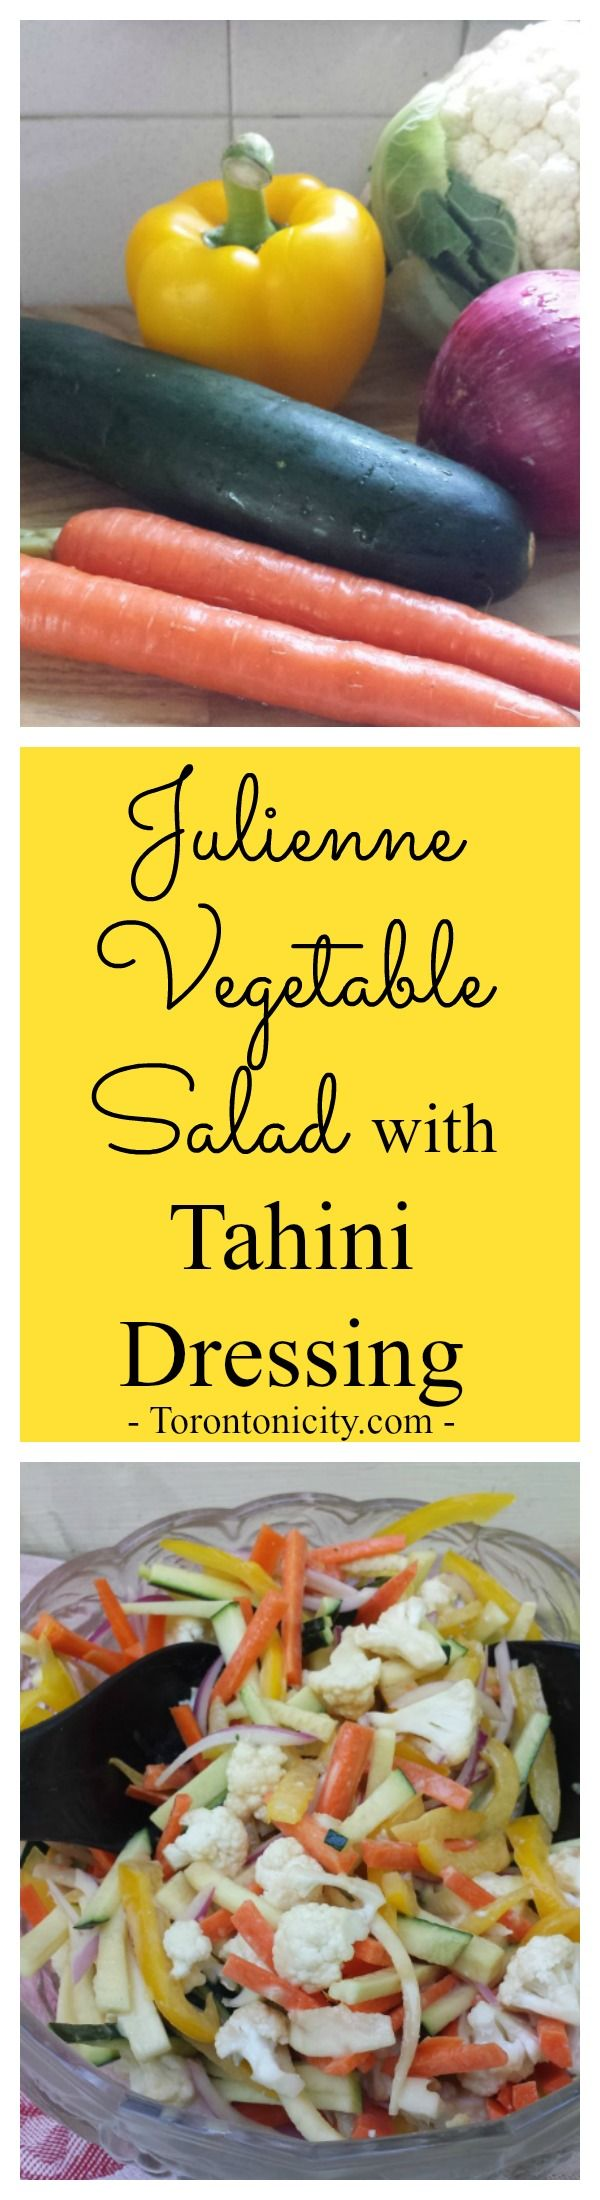 Julienne Vegetable Salad with Tahini Dressing. Enjoy this summer salad with fresh vegetables from the farmer's market including cauliflower, zucchini, carrots, red onion and yellow bell pepper.